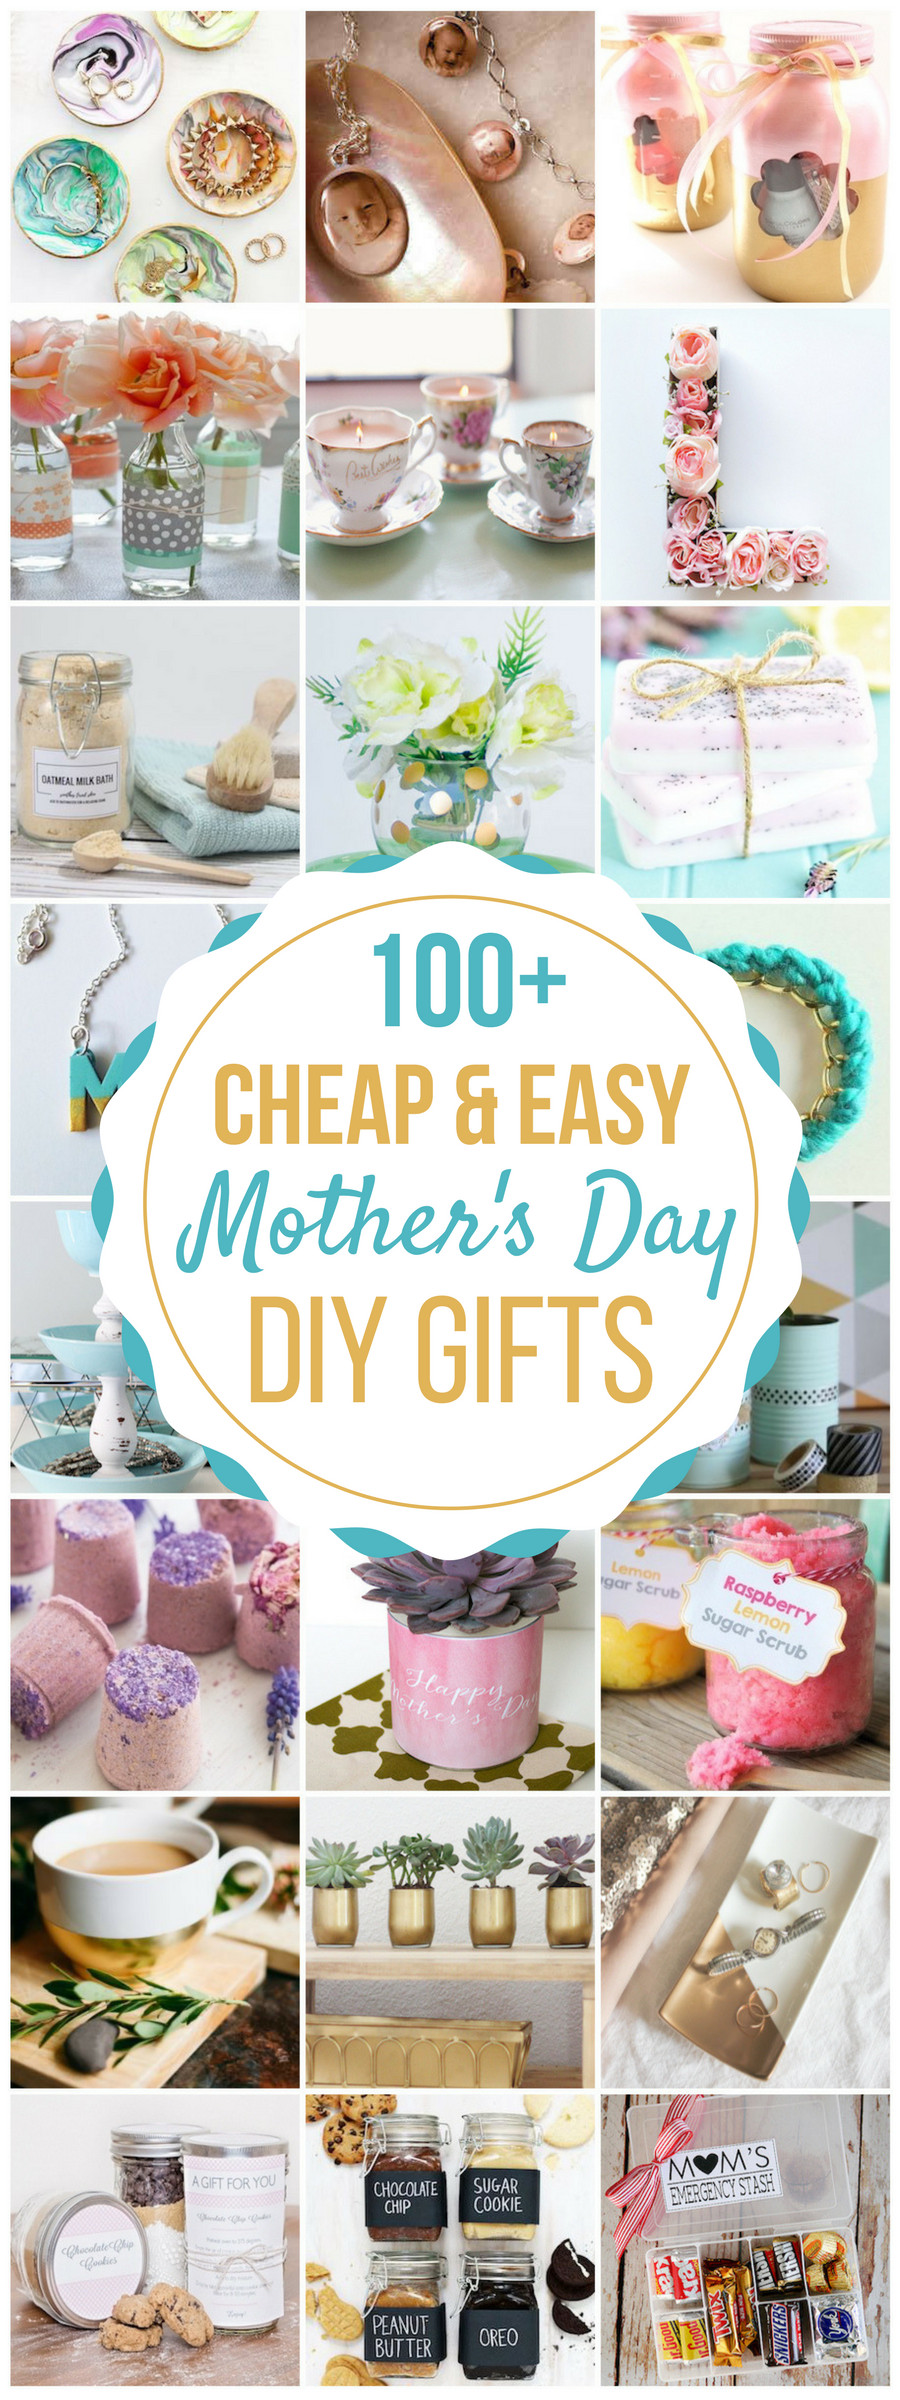 DIY Mother Gifts  100 Cheap & Easy DIY Mother s Day Gifts Prudent Penny